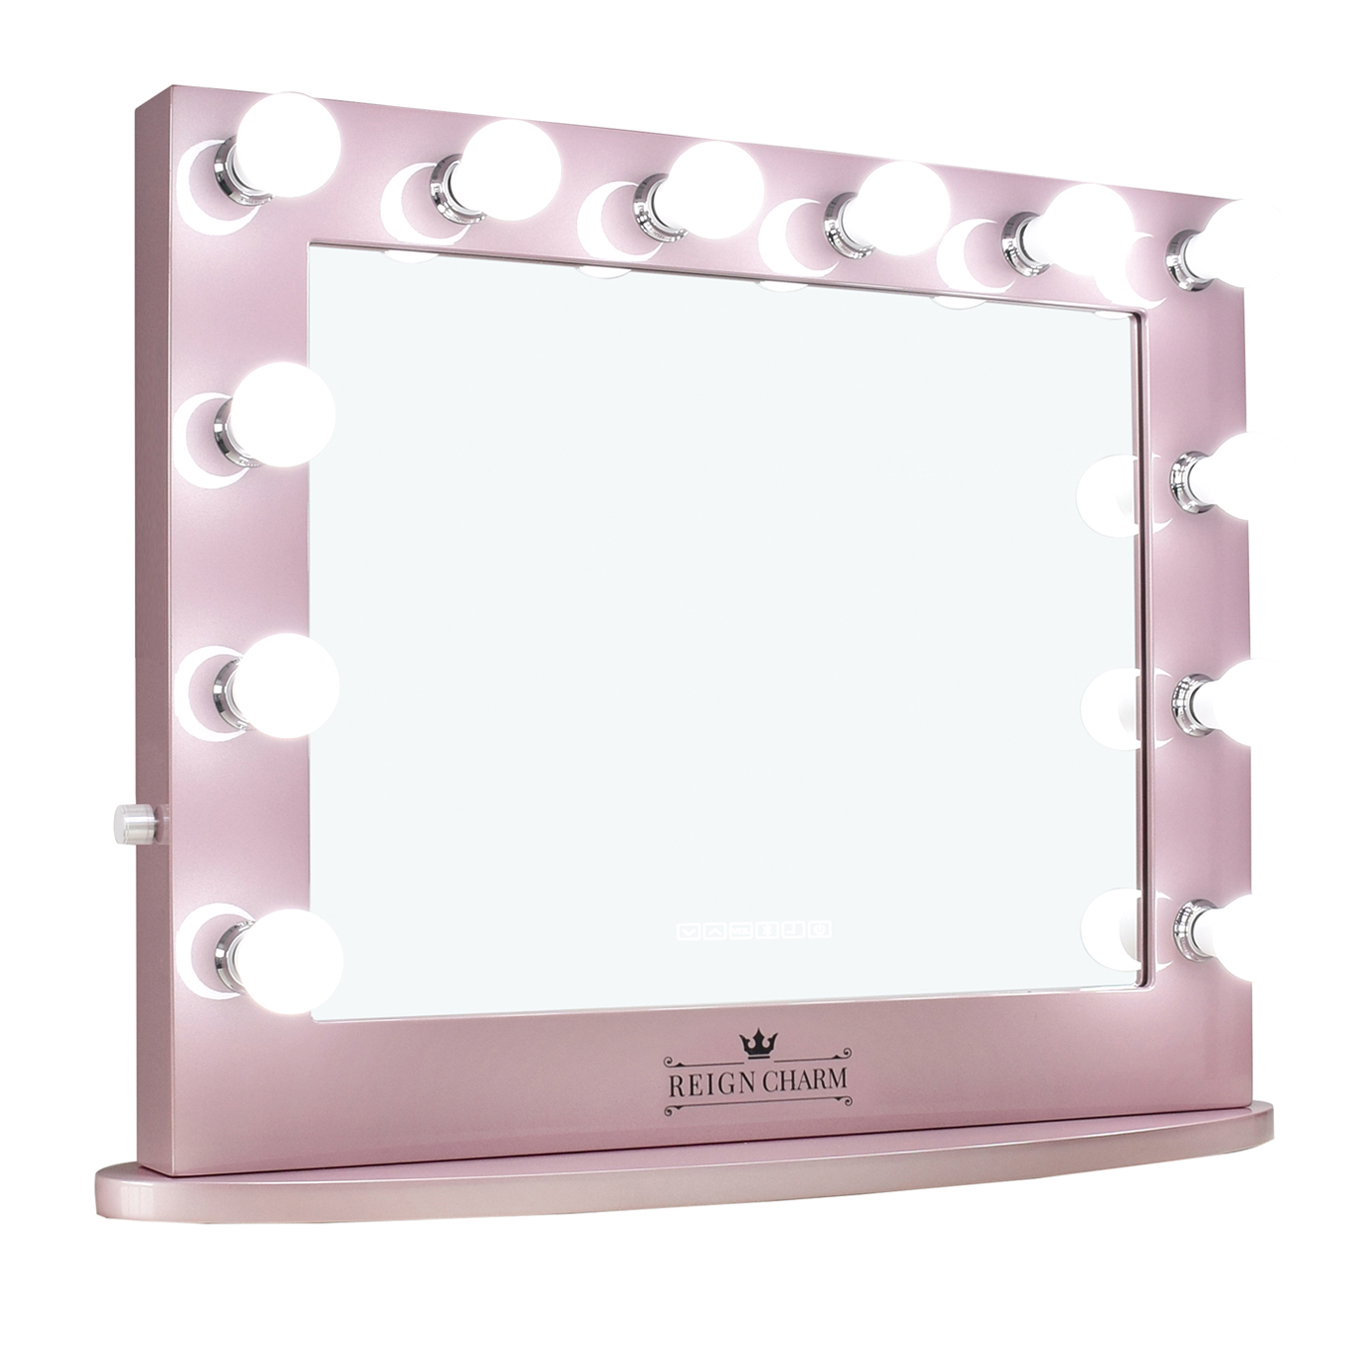 ReignCharm Hollywood Vanity Mirror, 12 LED Lights, Dual Outlets & USB, 32-inches x 27-inches, Rose Gold